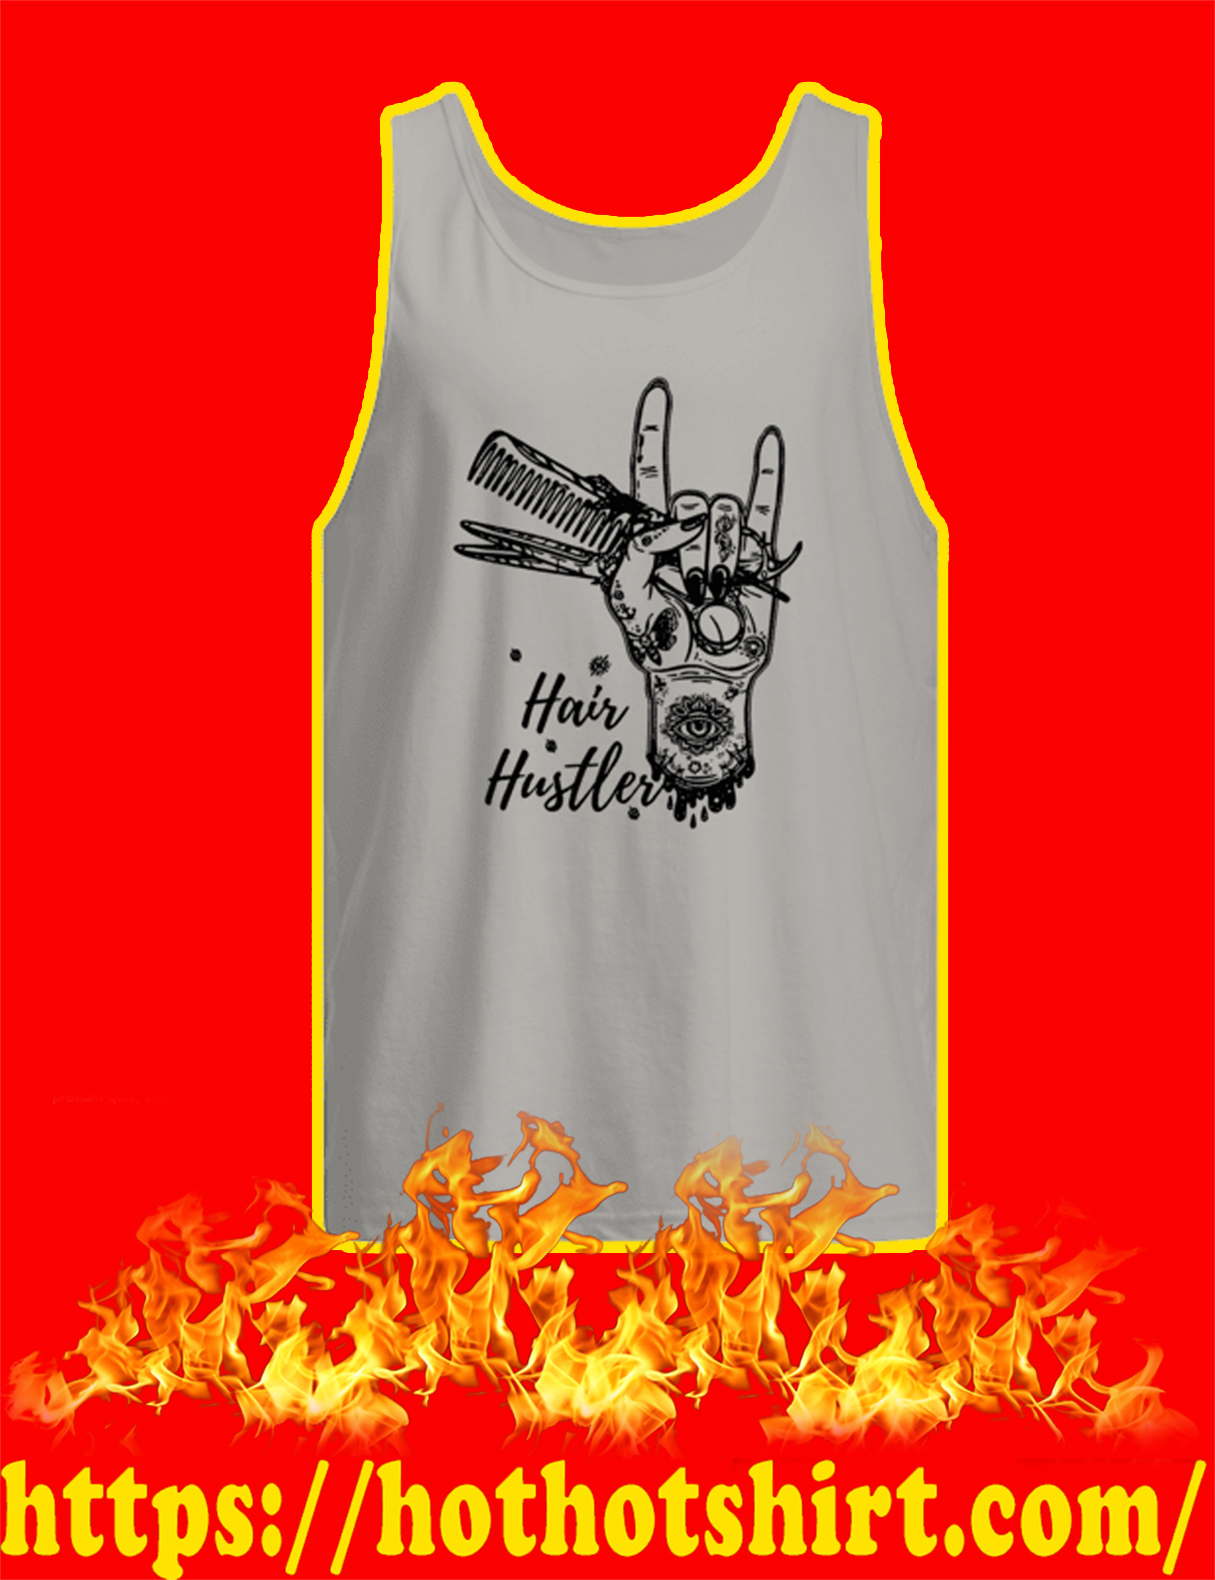 Hair Hustler Tank Top